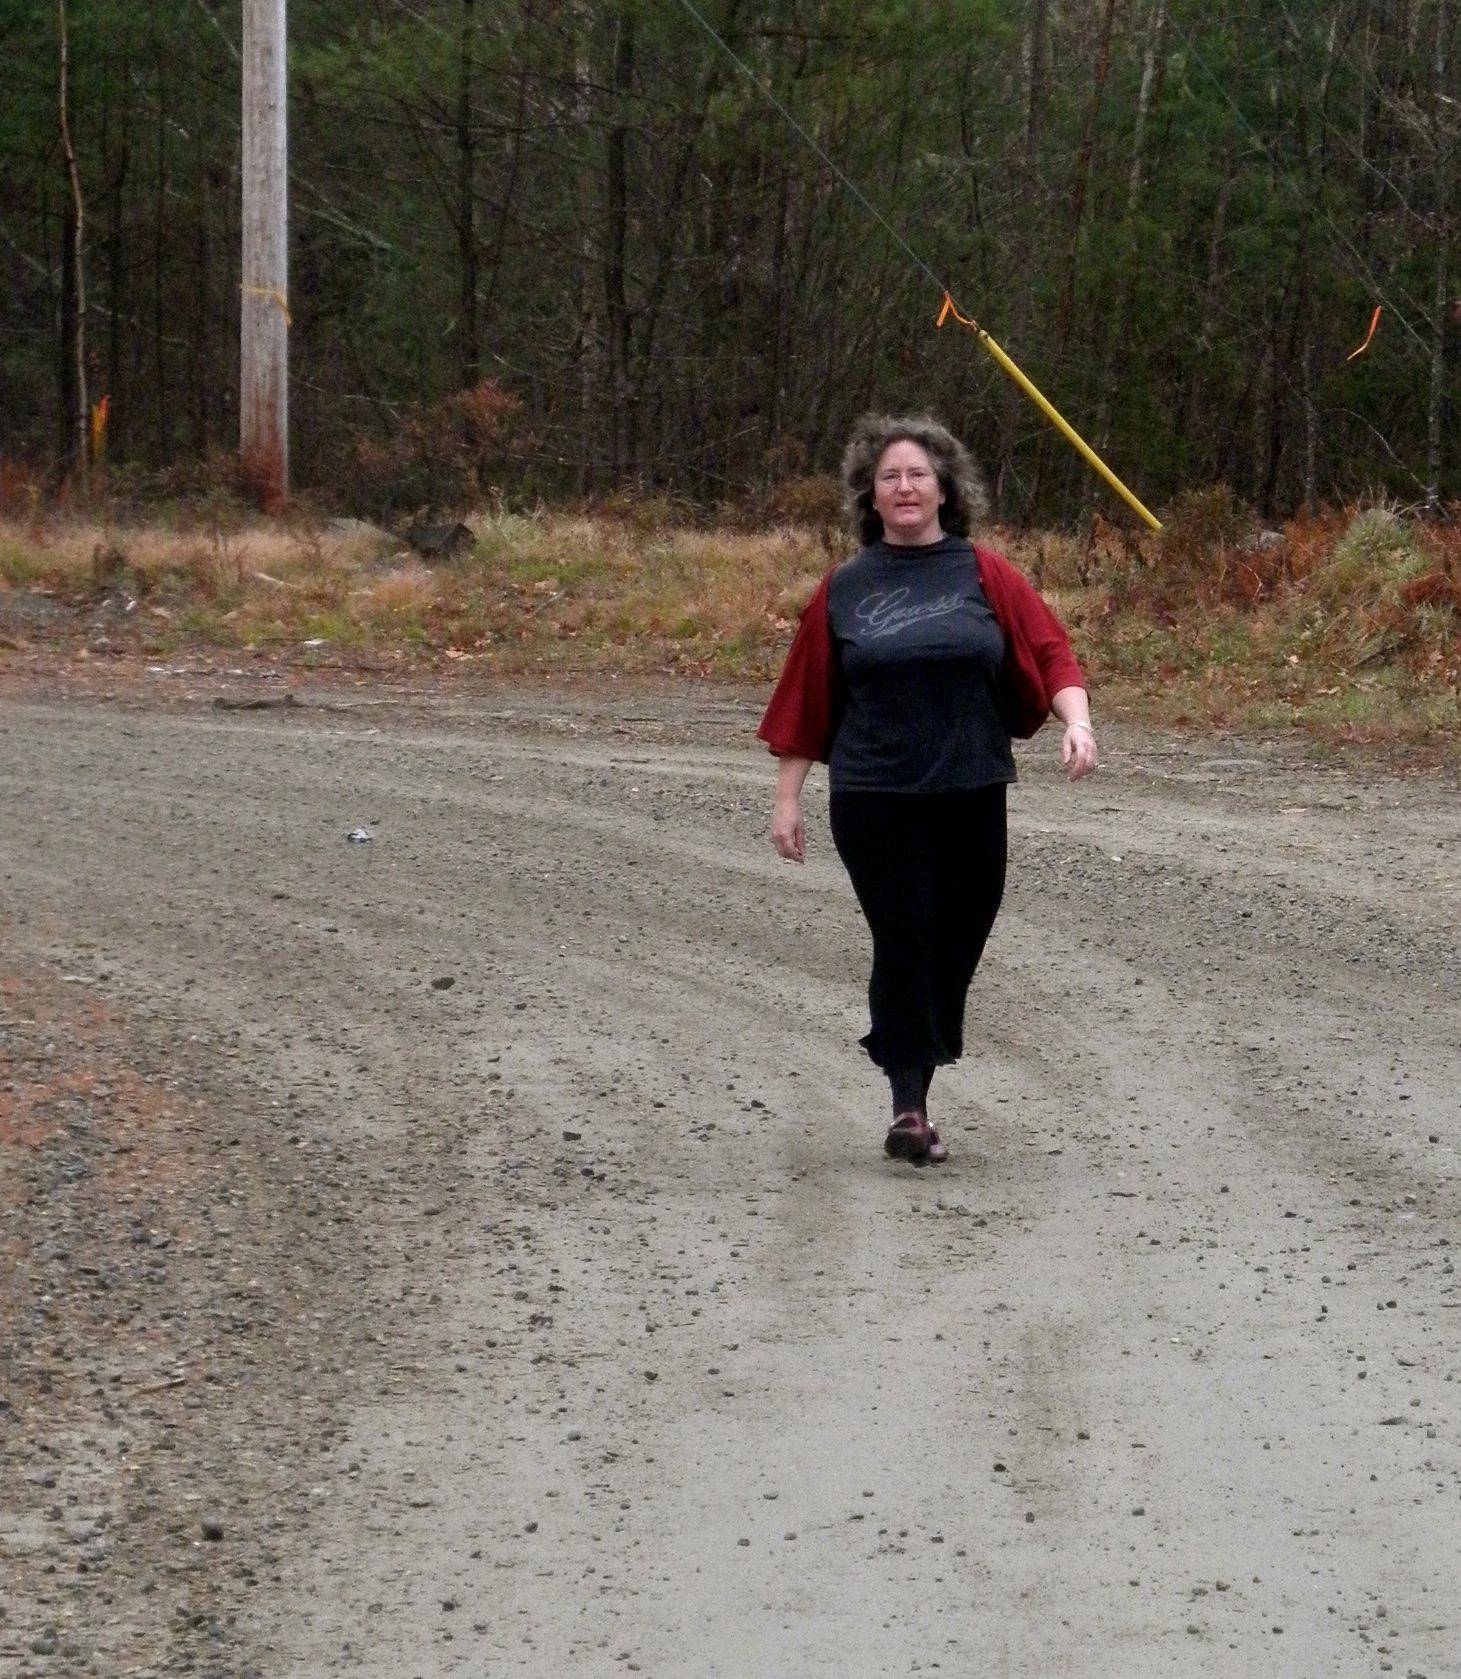 Dayle on dirt rd